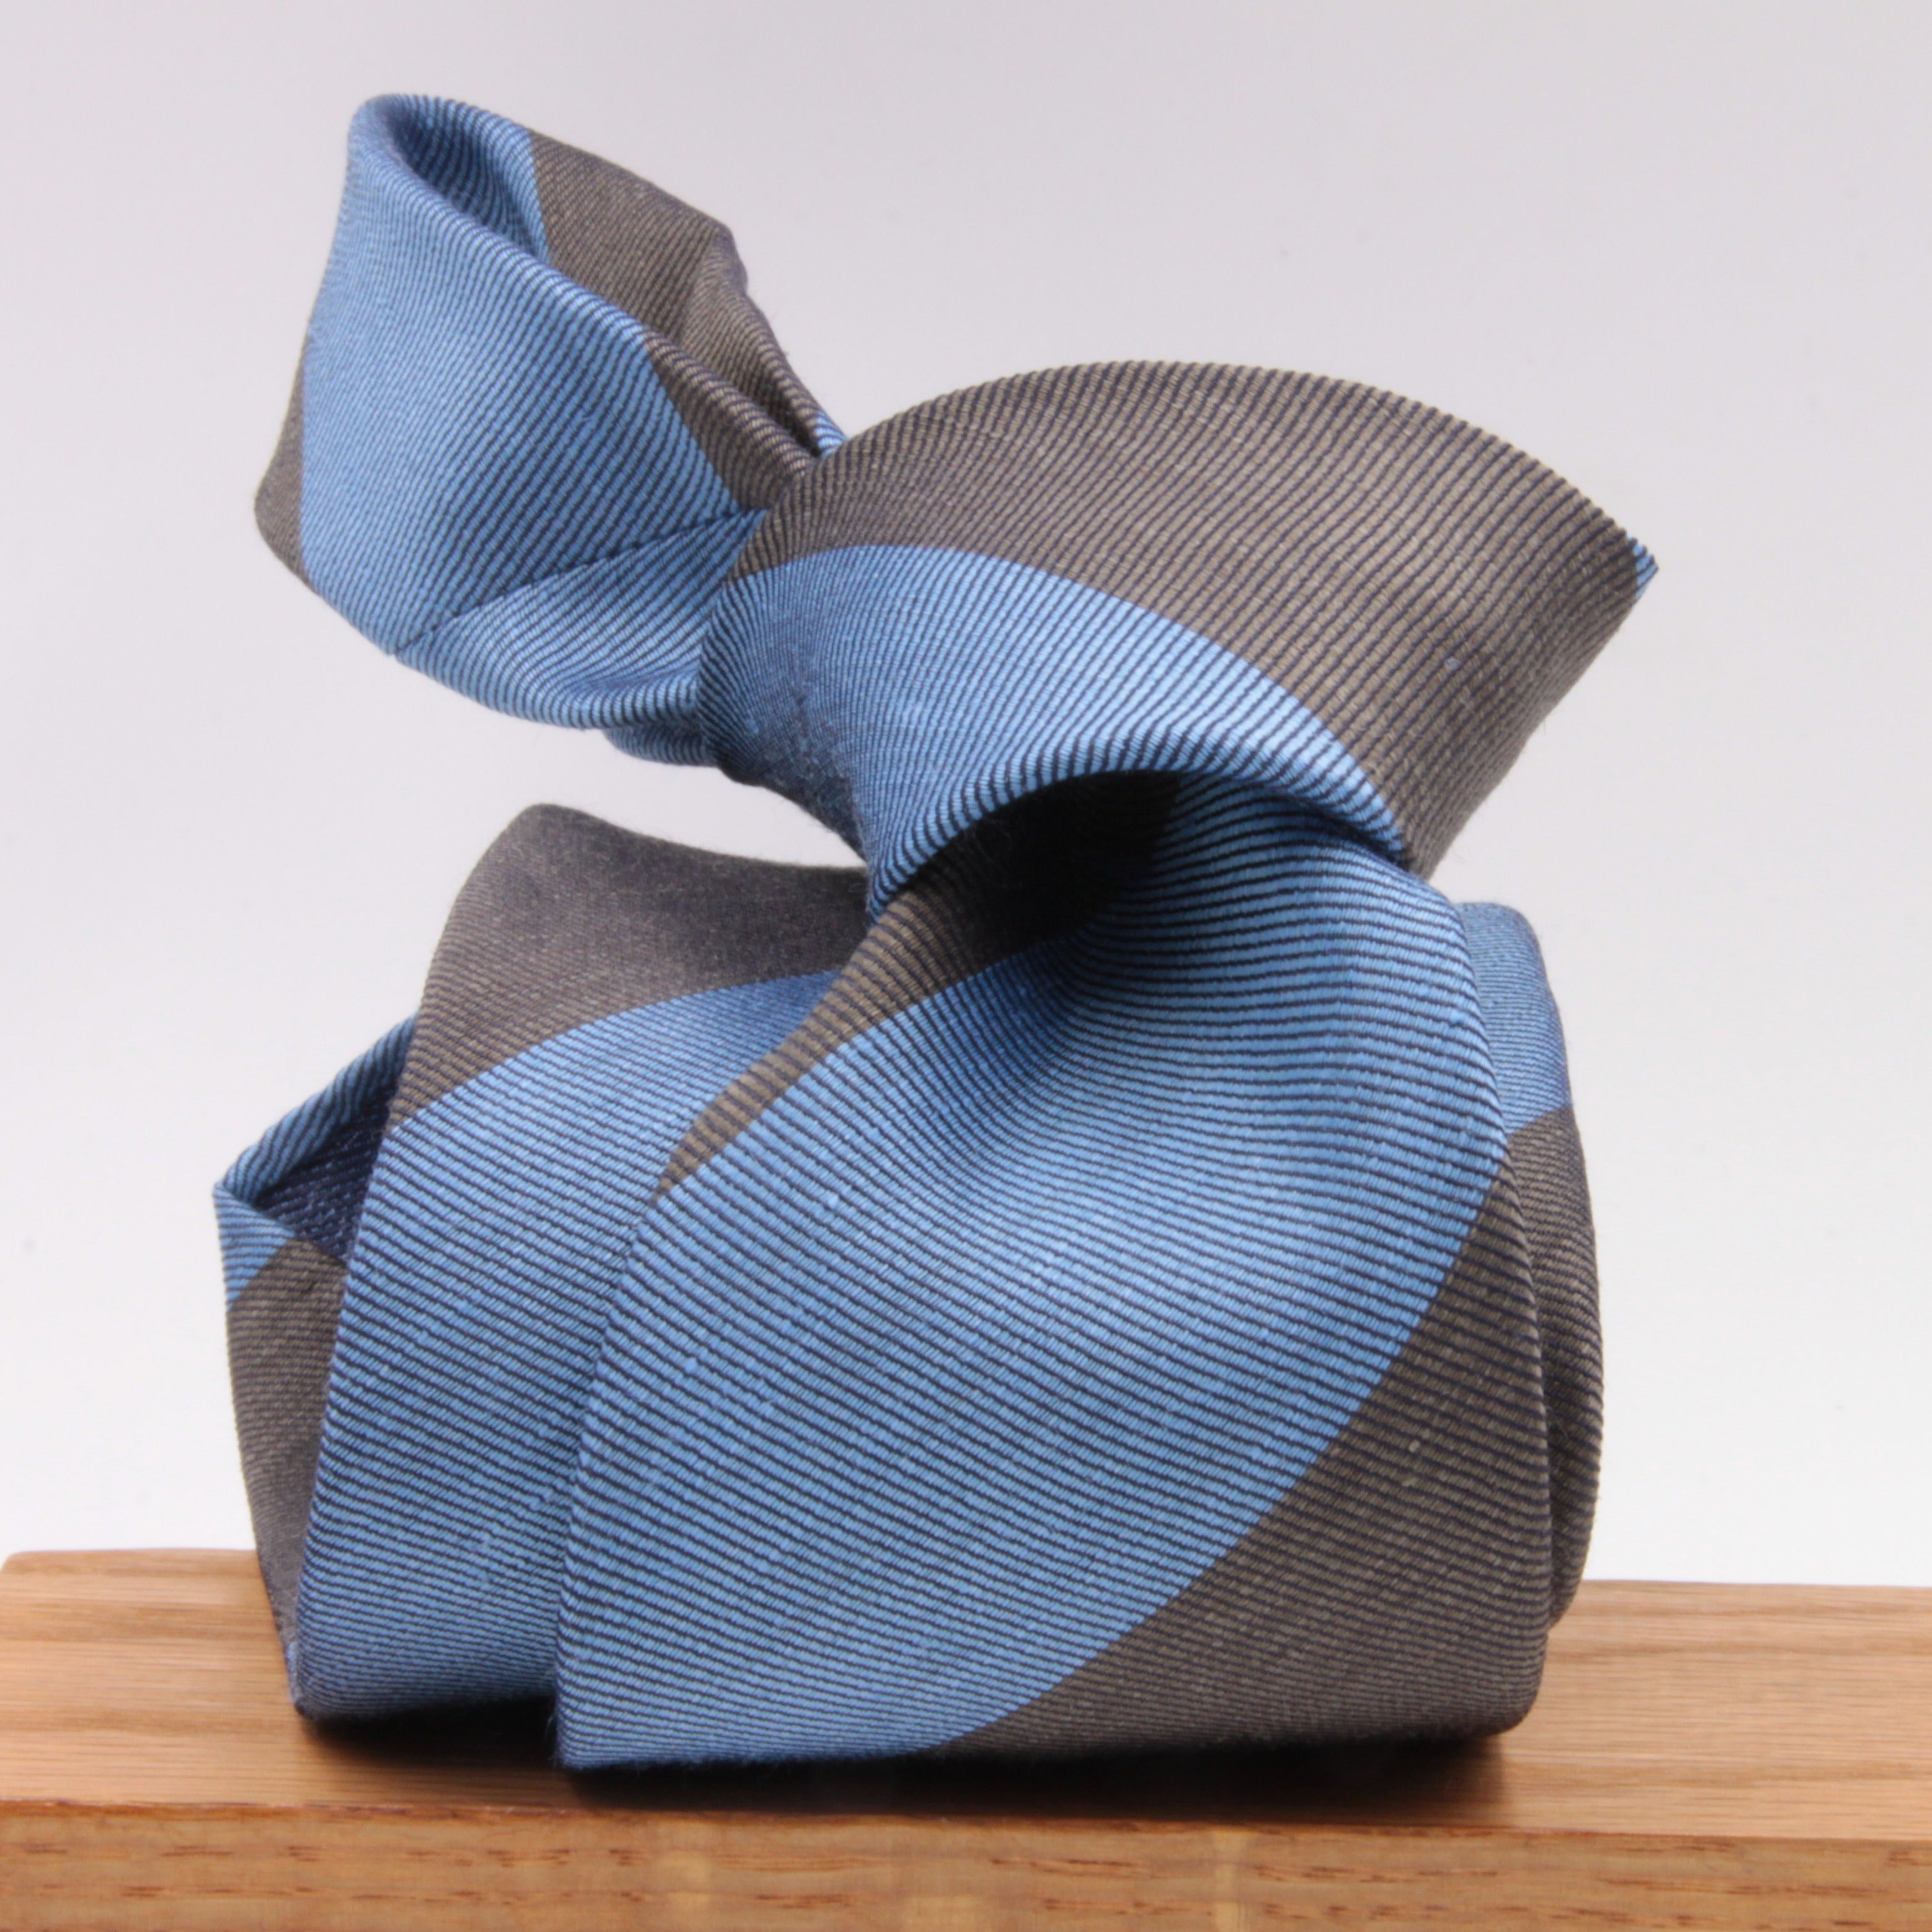 Cruciani & Bella 60% Linen, 40% Silk  Italian fabric Unlined Blue and Olive Green unlined stripe tie Handmade in Italy 8 cm x 150 cm